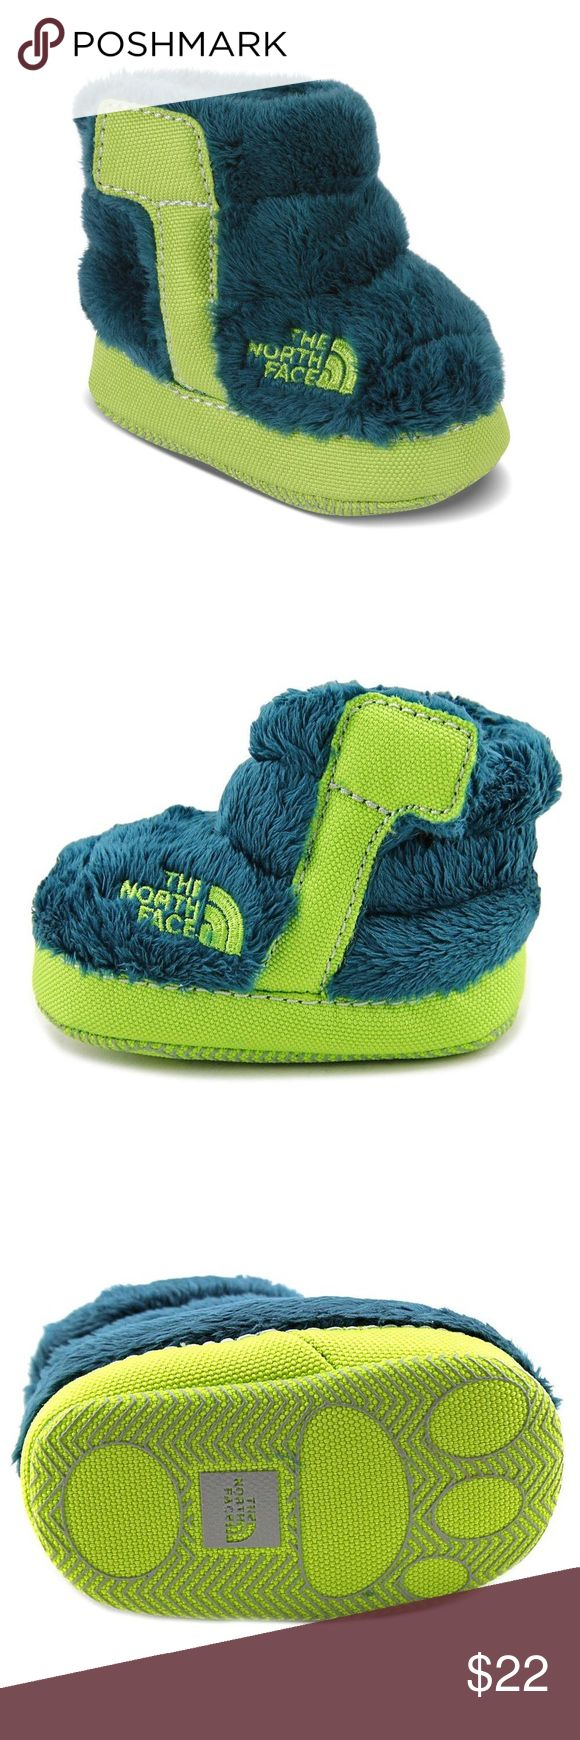 New The North Face NSE Infant Fleece Bootie The North Face NSE Infant Fleece Booties in Blue/Teal •New in box •Retails for $30  Check out my other listings- Nike, adidas, Michael Kors, Hunter Boots, Kate Spade, Miss Me, Rock Revival, Coach, Wildfox, Victoria's Secret, PINK, True Religion, Ugg Australia, Free People and more! The North Face Shoes Baby & Walker